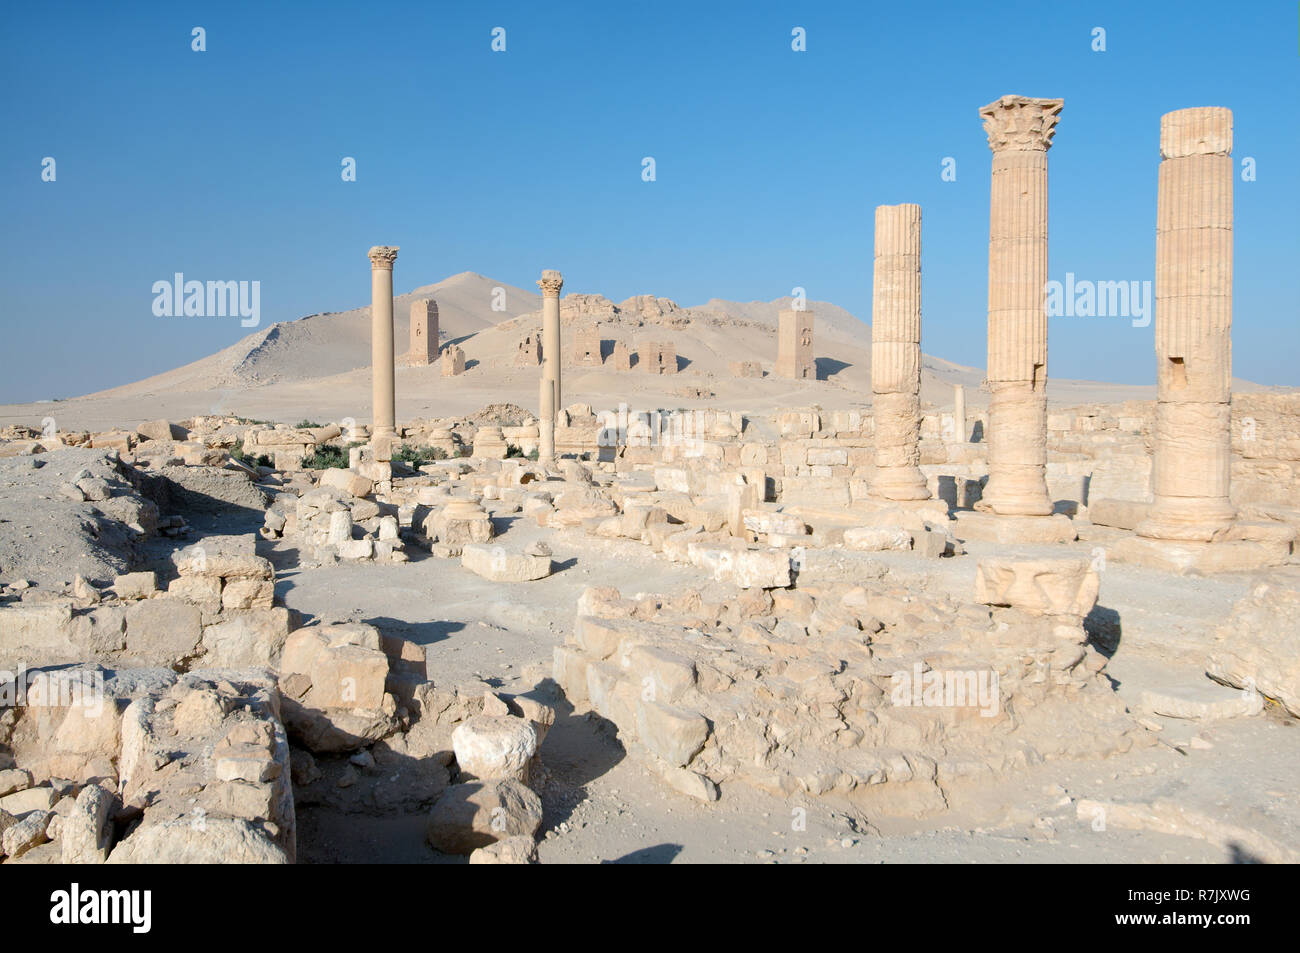 Ruins of the ancient city of Palmyra, Palmyra District, Homs Governorate, Syria - Stock Image